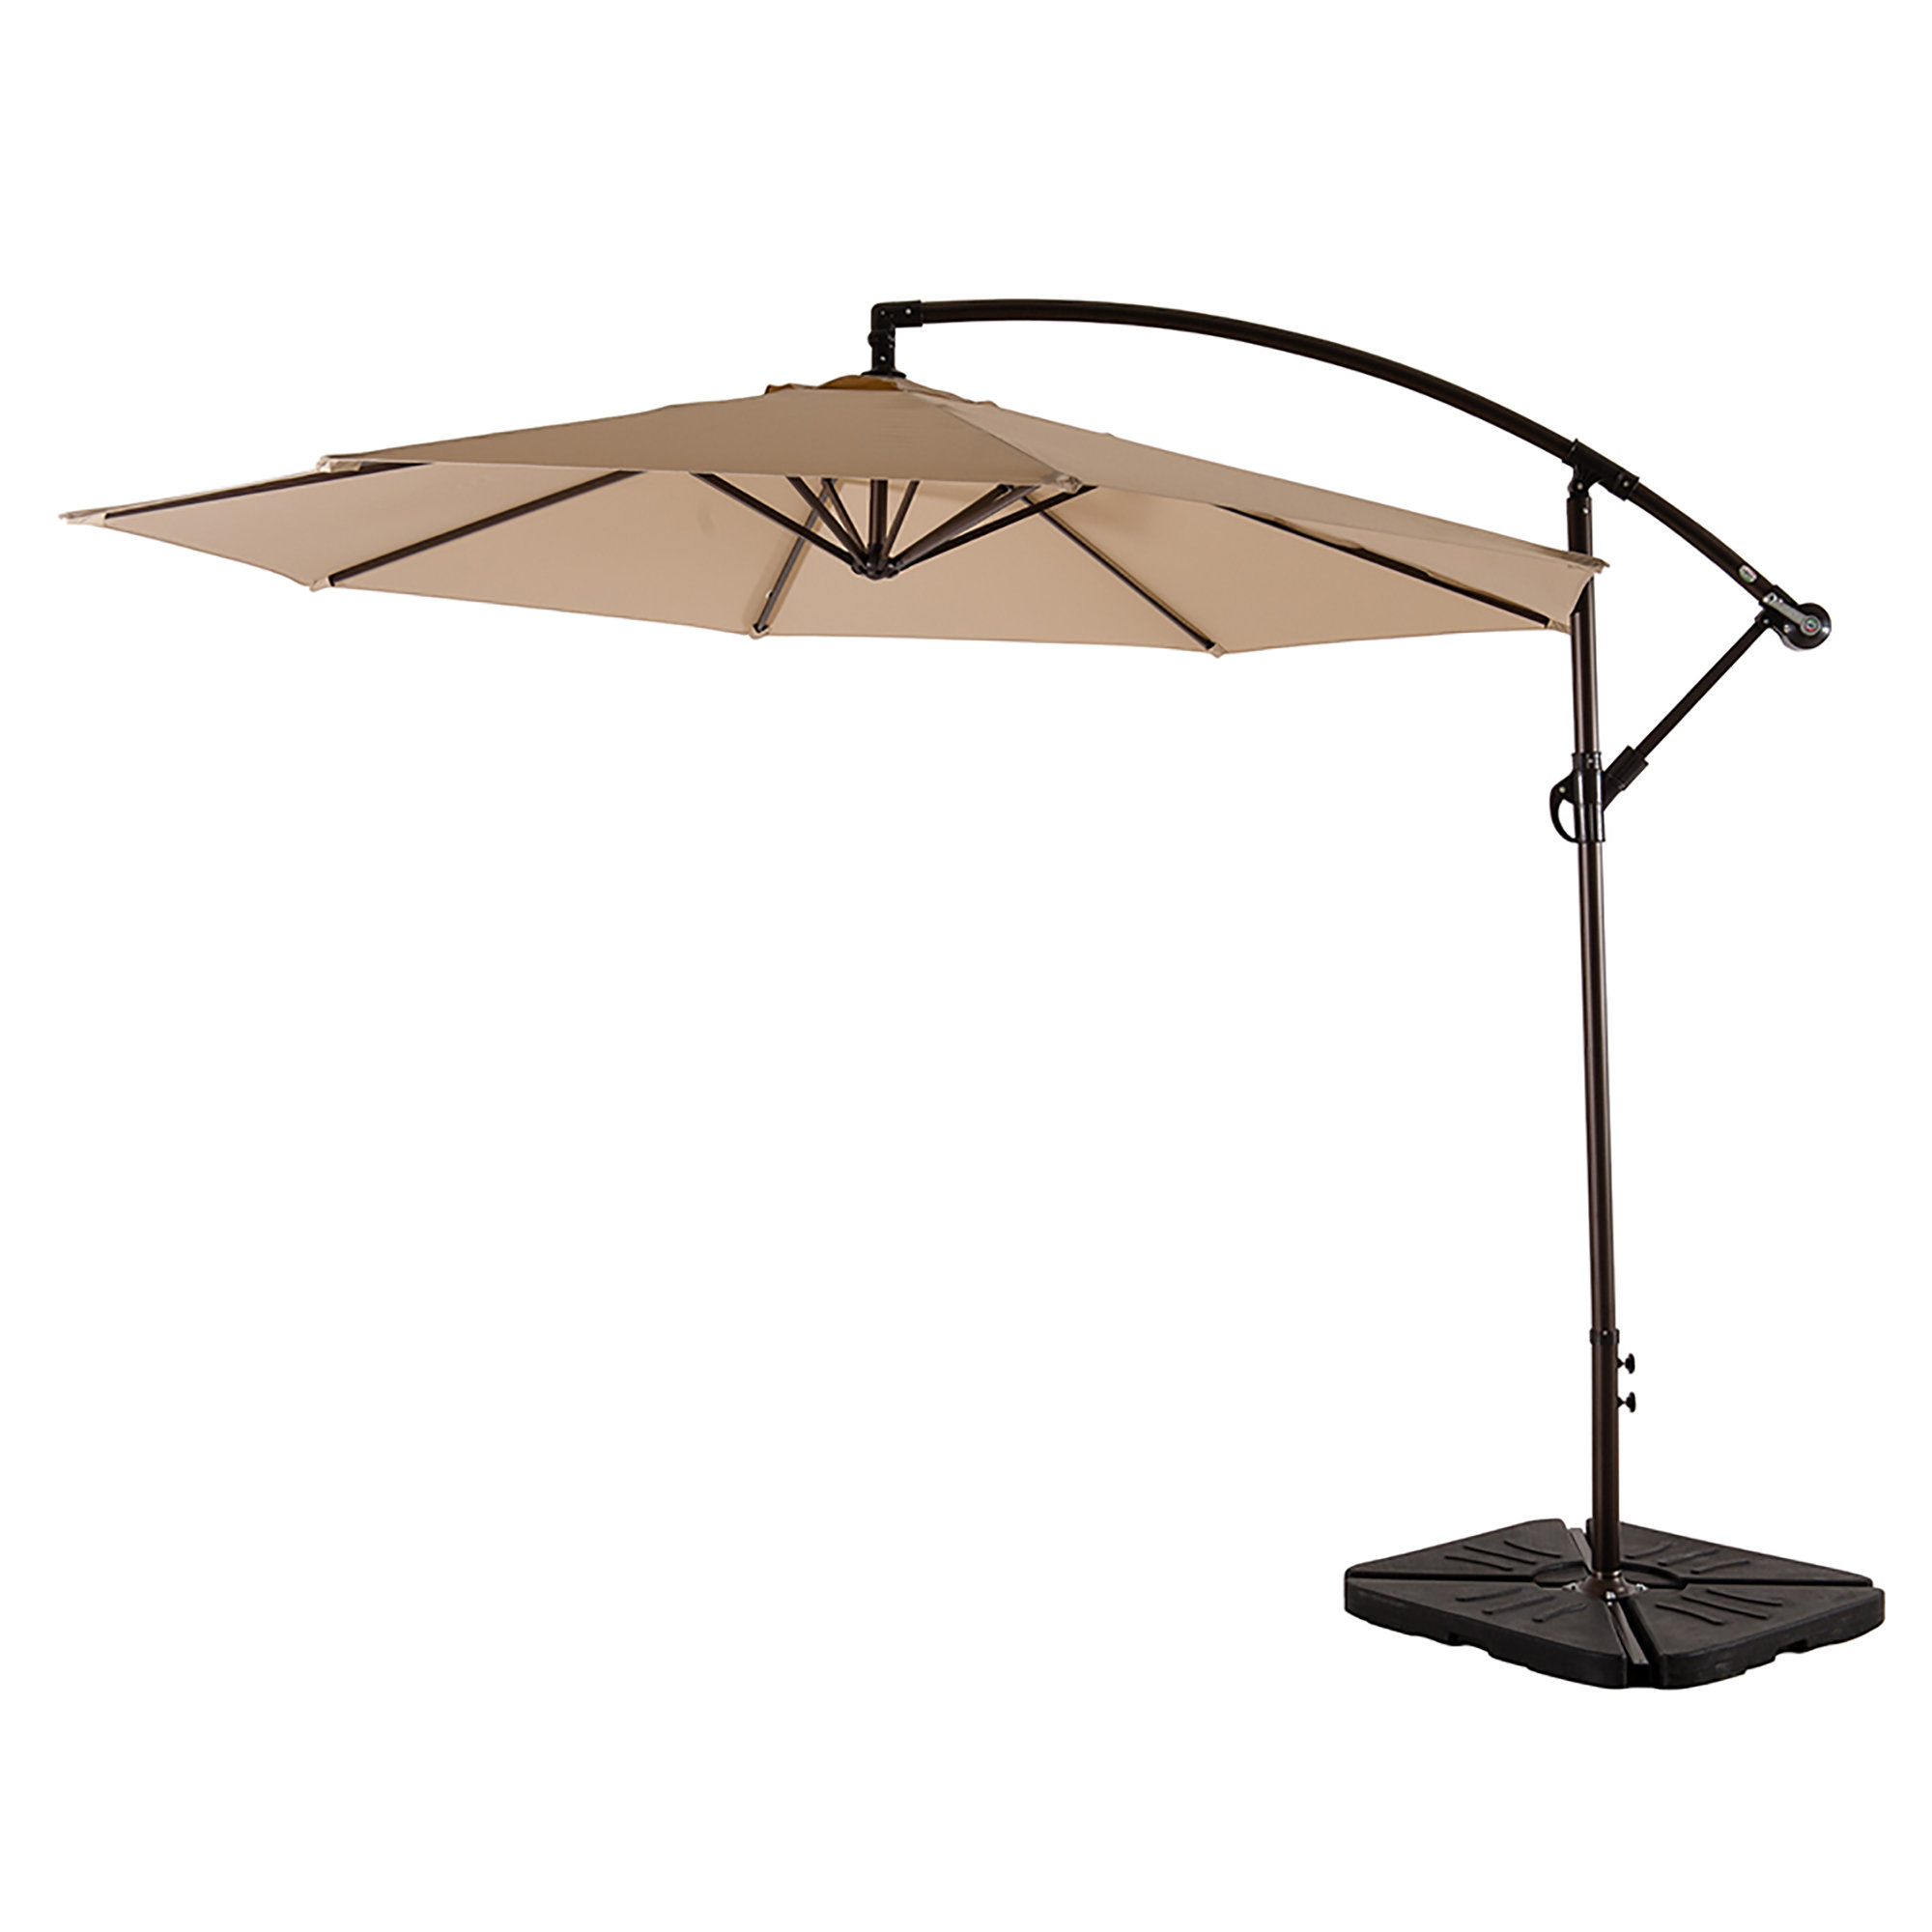 Ryant Cantilever Umbrellas For Preferred Kizzie Market 10' Cantilever Umbrella (View 12 of 20)